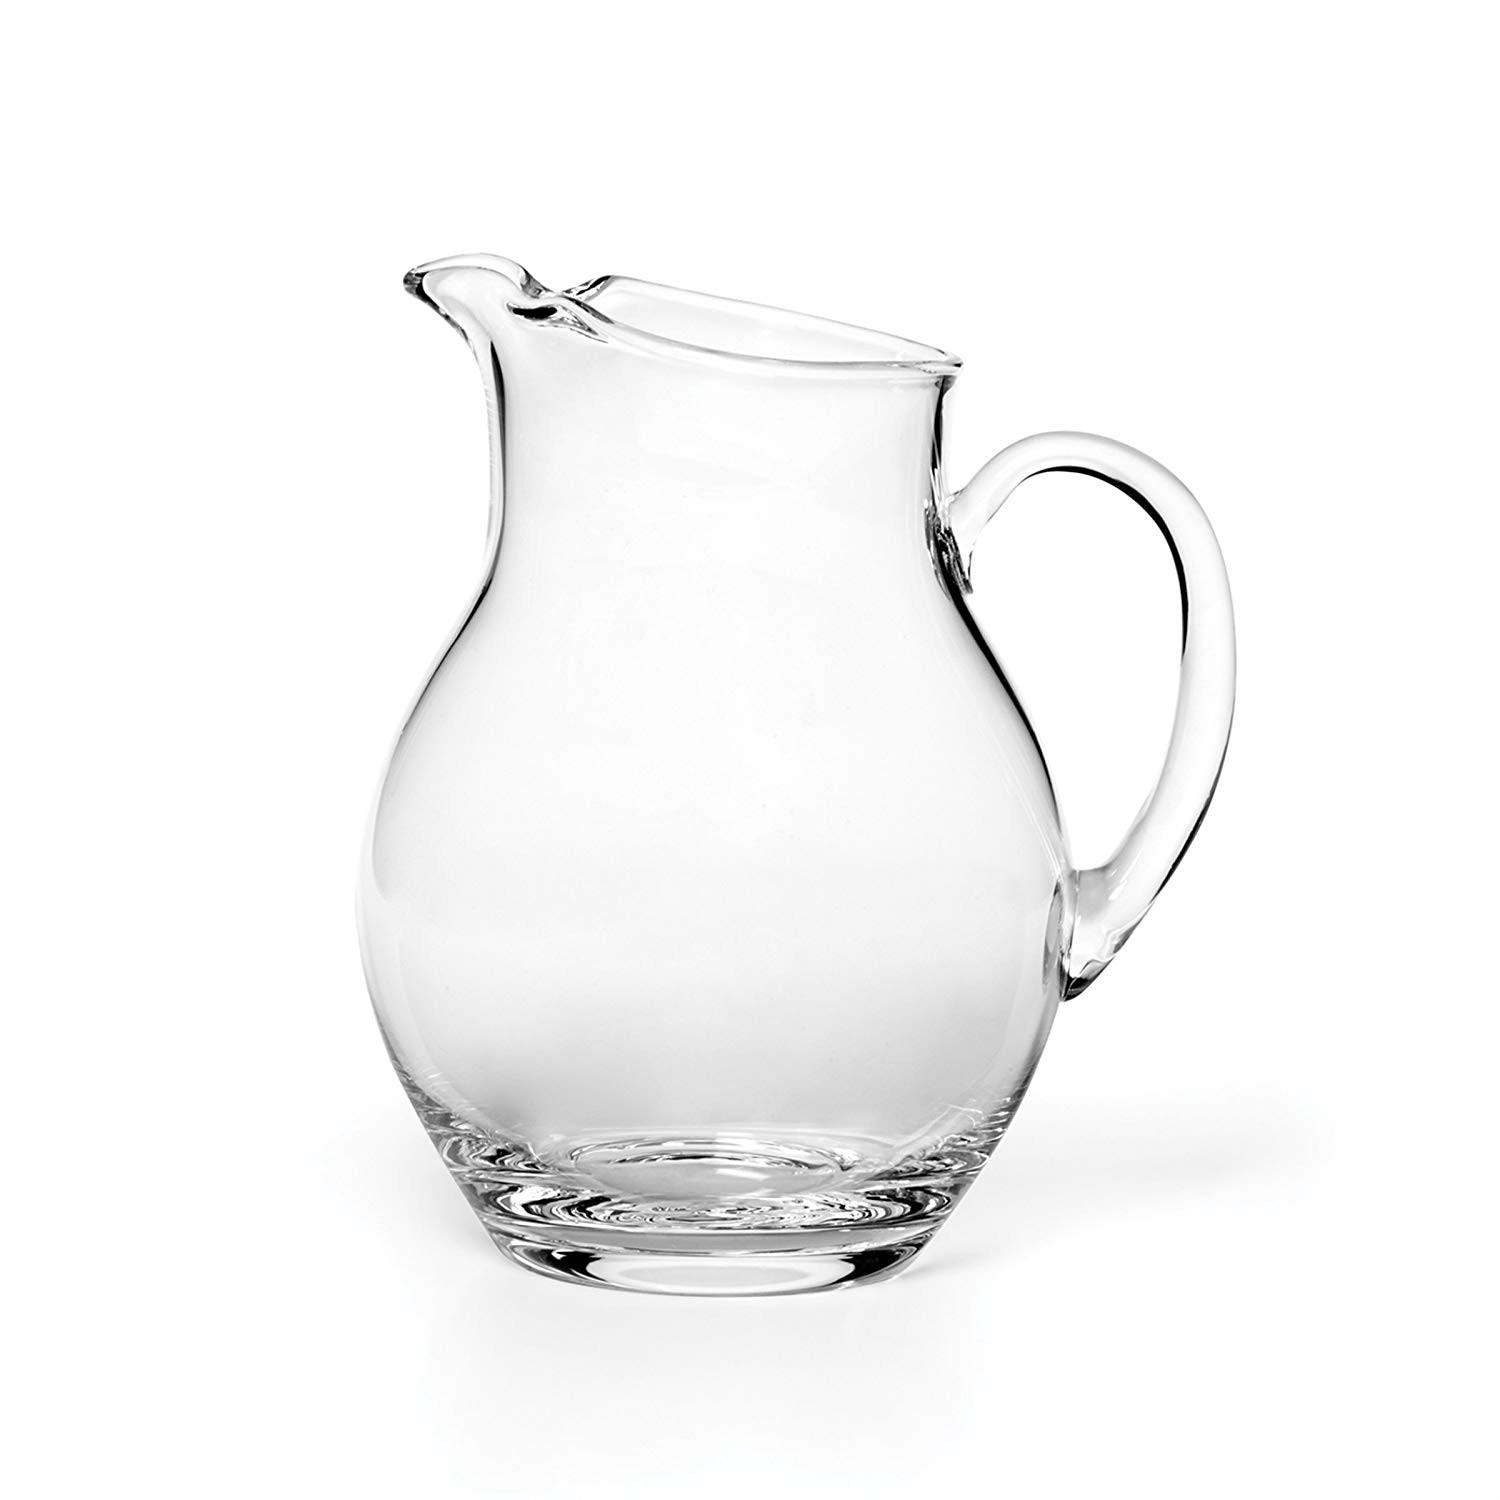 mikasa atlantic crystal vase of amazon com mikasa napoli pitcher 80 ounce carafes pitchers regarding 71h6cos3y2l sl1500